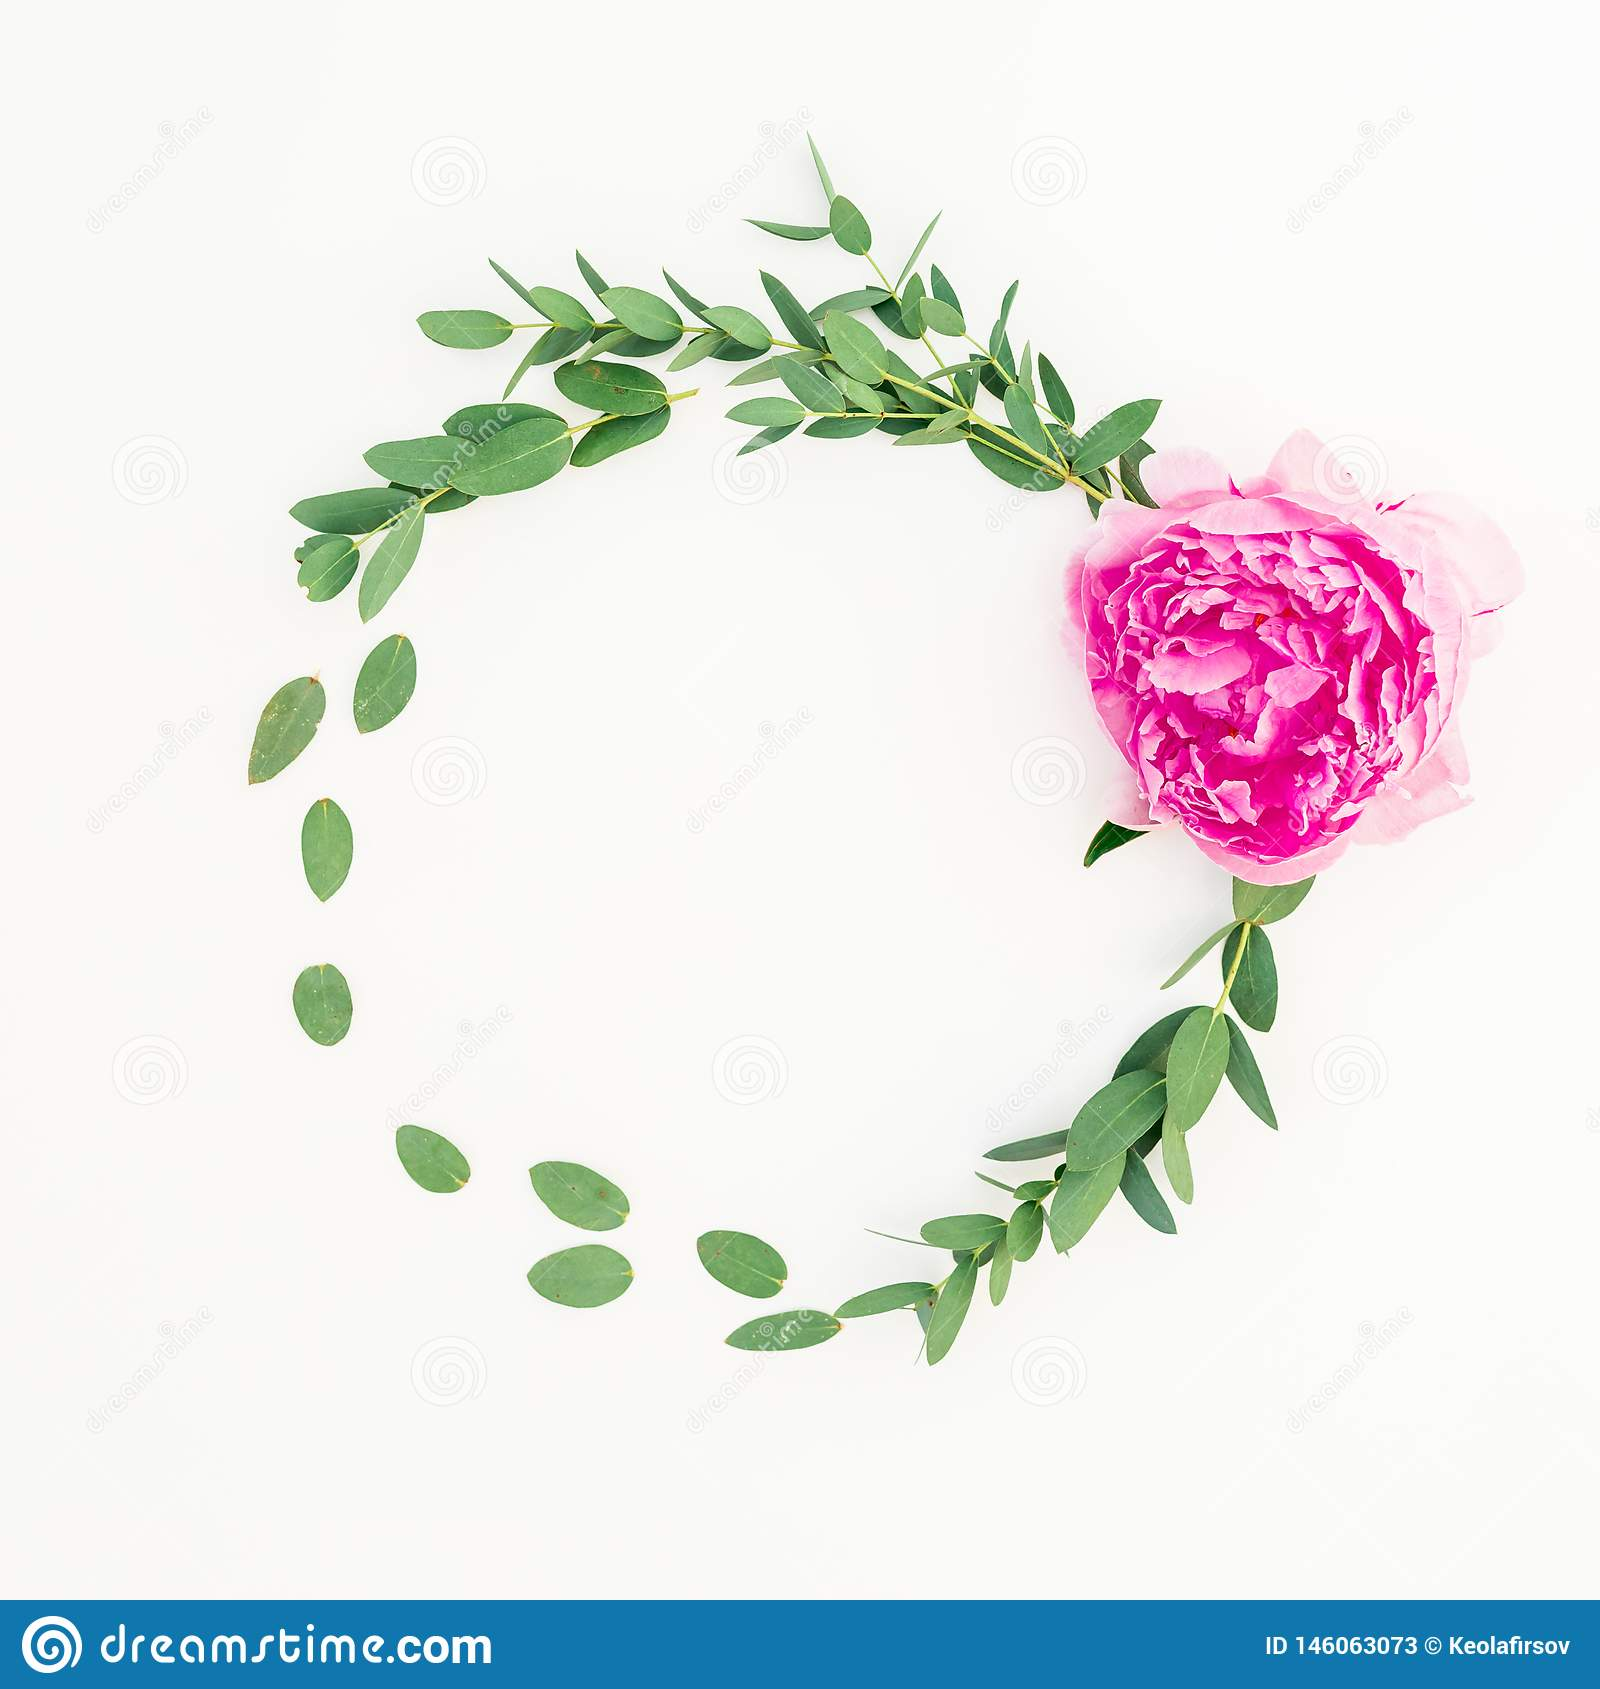 Floral round frame of pink peony flower, hypericum and eucalyptus on white background. Flat lay